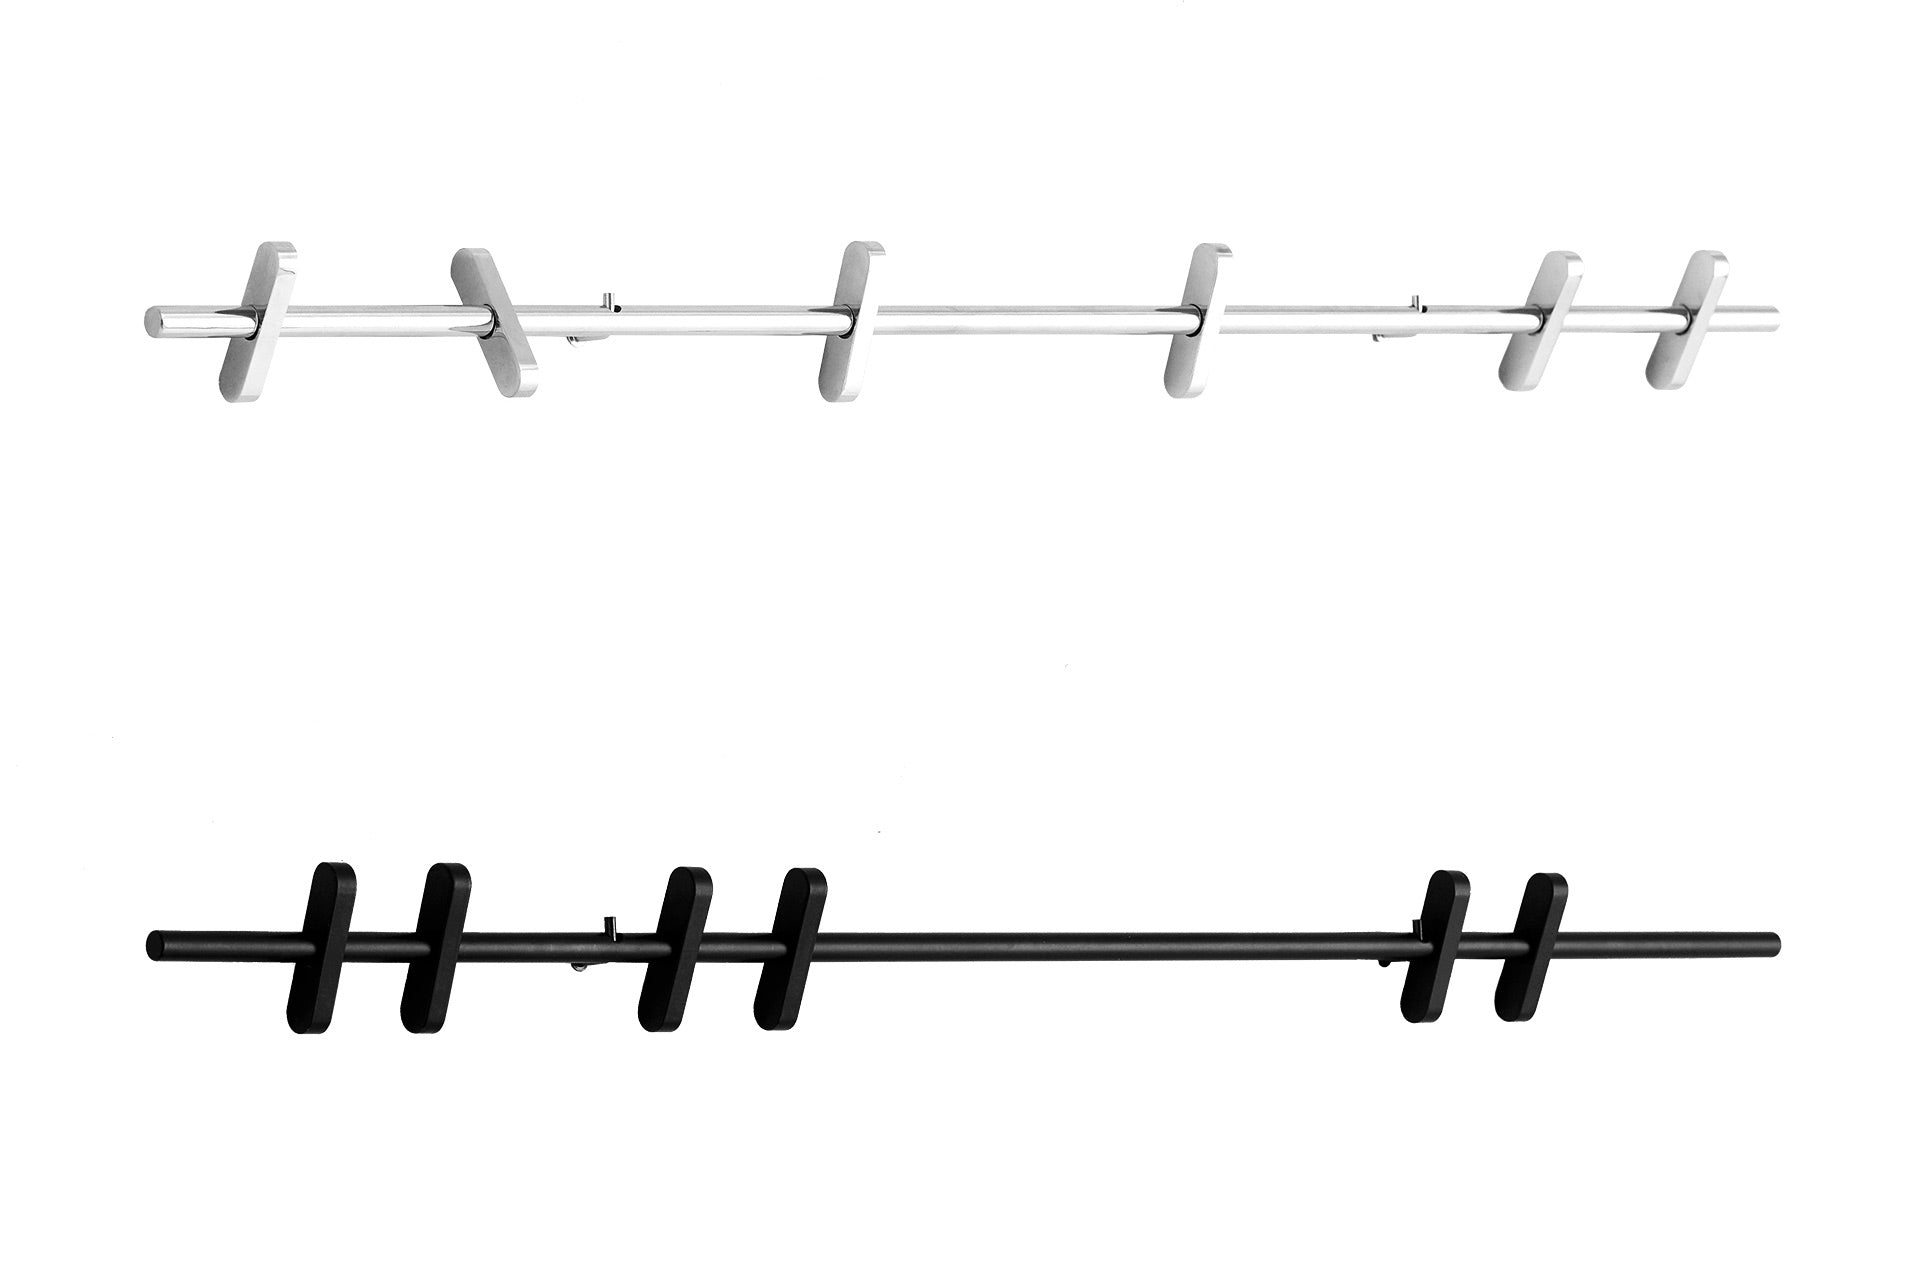 Porte-manteau COAT RACK 70cm by Moebe-métal noir ou chromé-PARIDEO Design durable